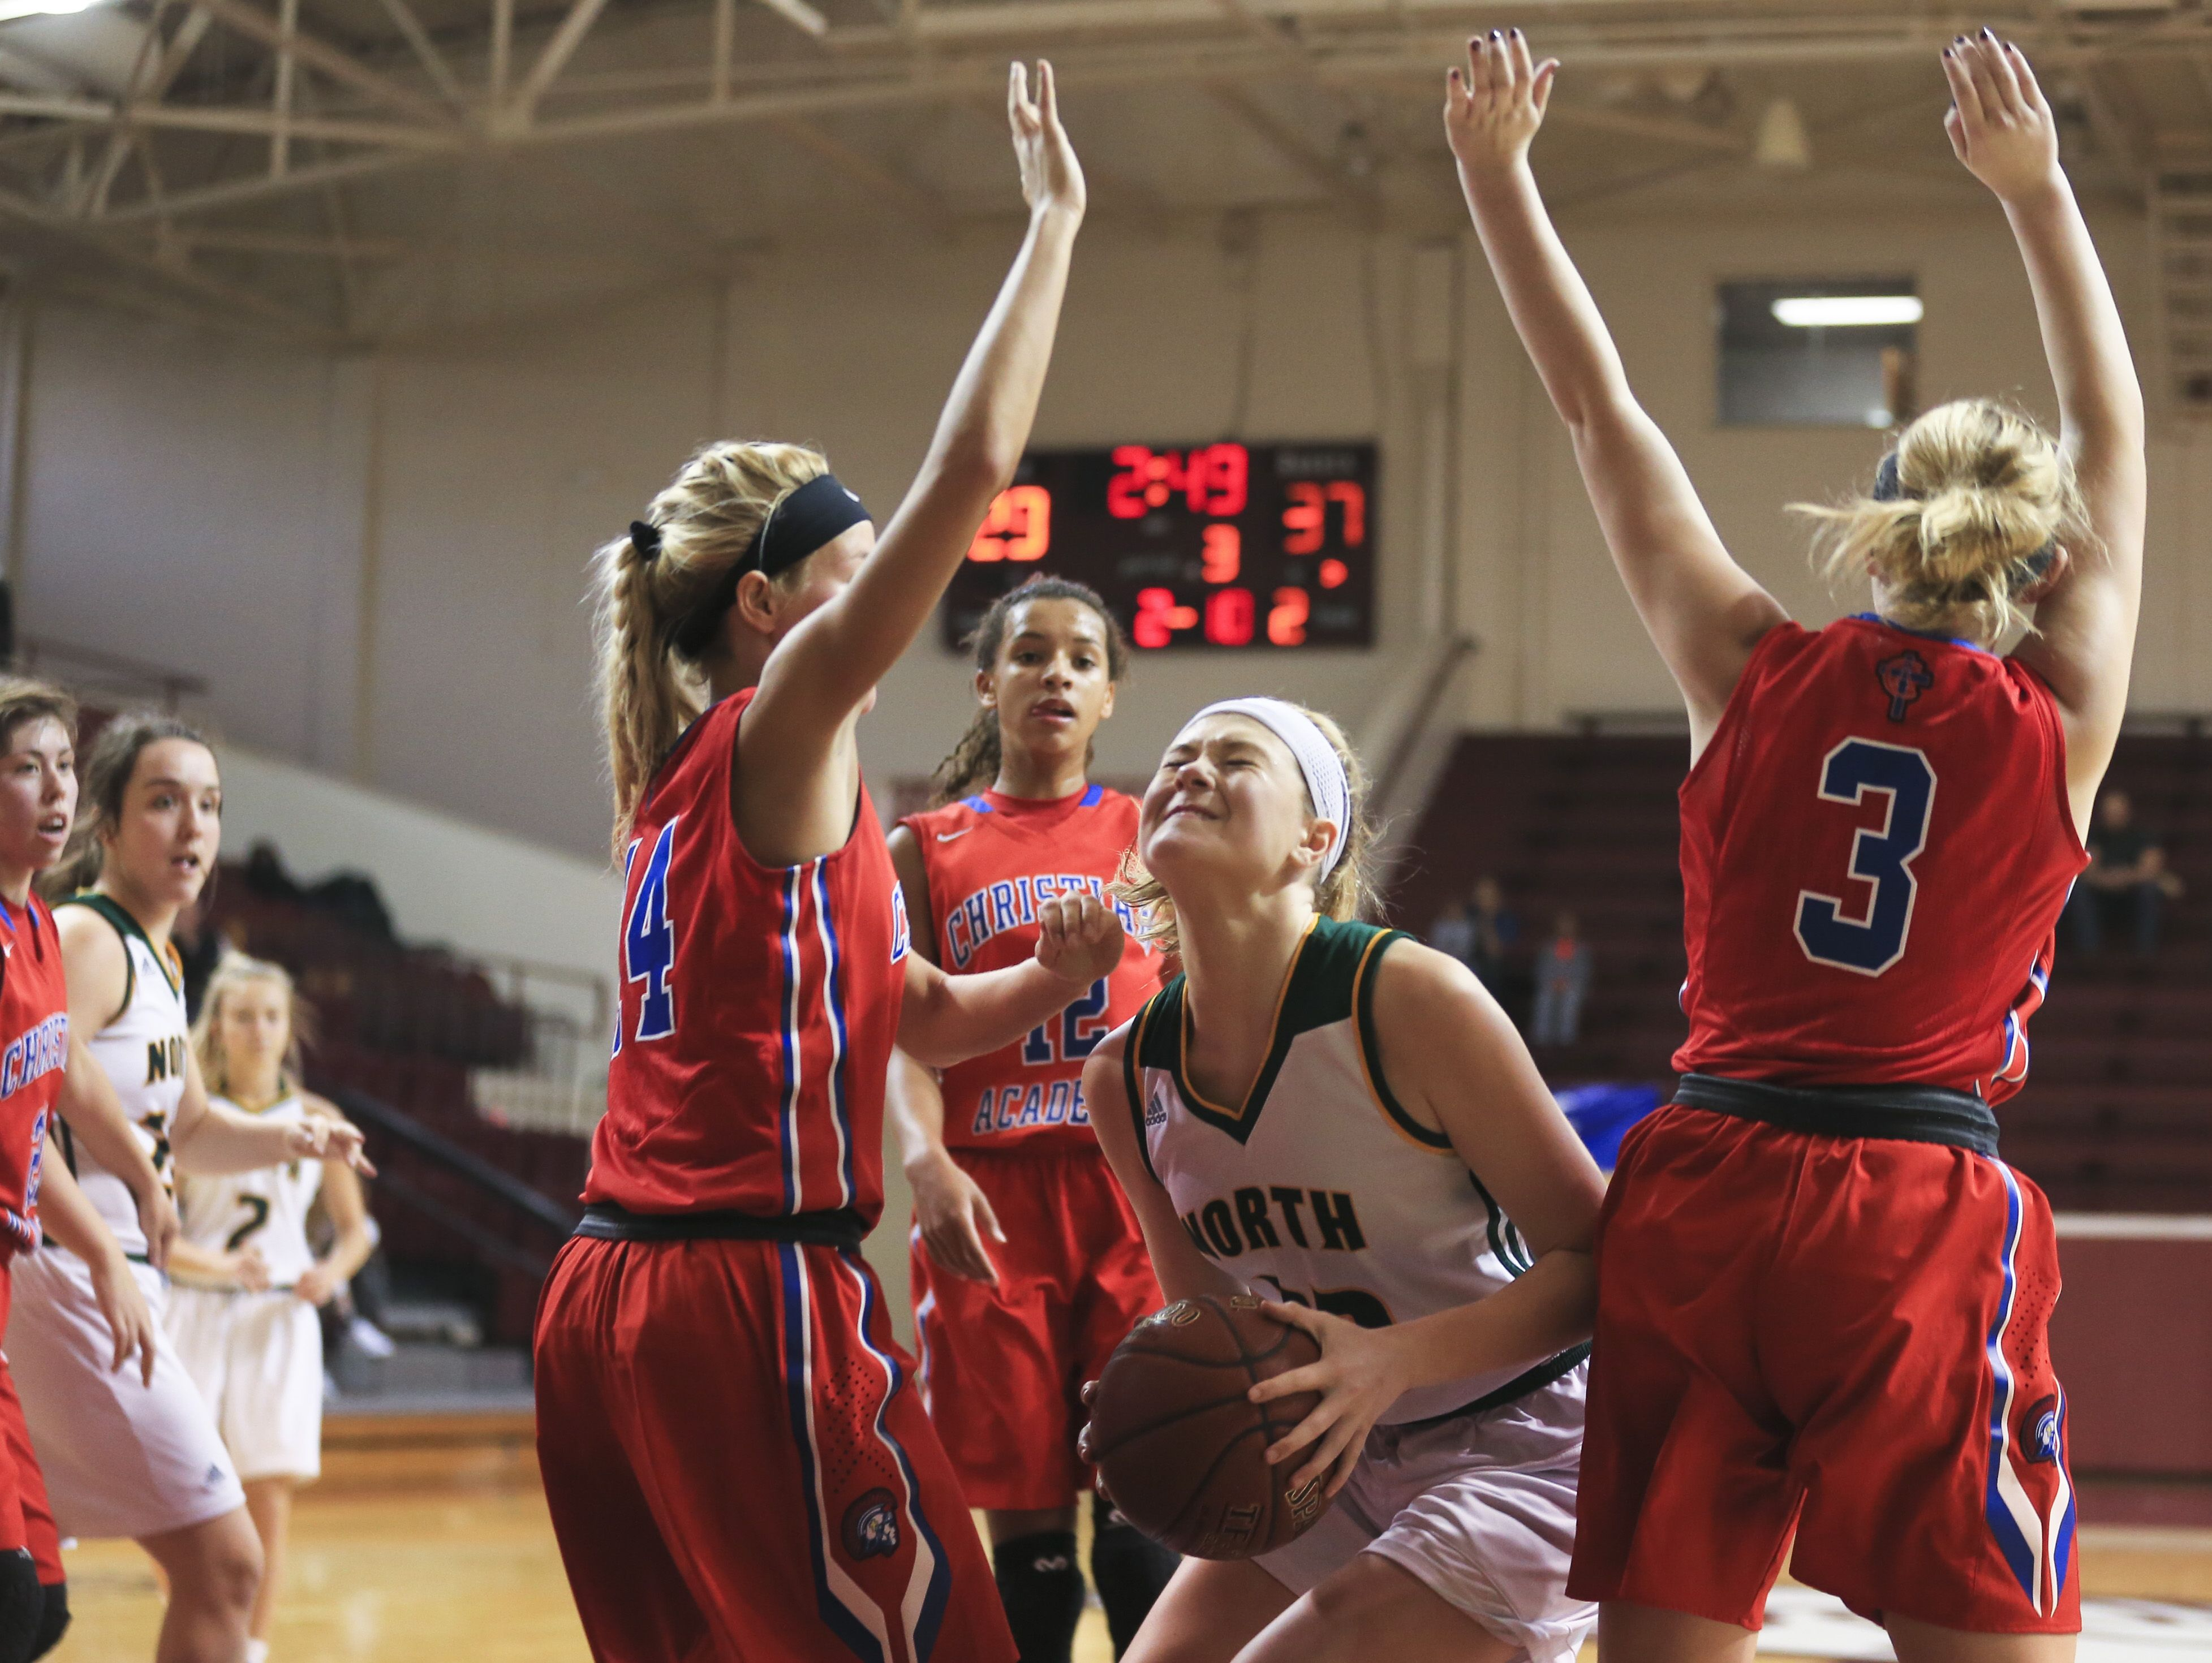 North Bullitt's Lauren Deel was pressured by Christian Academy defenders in the first game of the Girls' LIT at Bellarmine University. Deel finished with 10 points and 11 rebounds. The Lady Centurions beat the Lady Eagles 57-45.